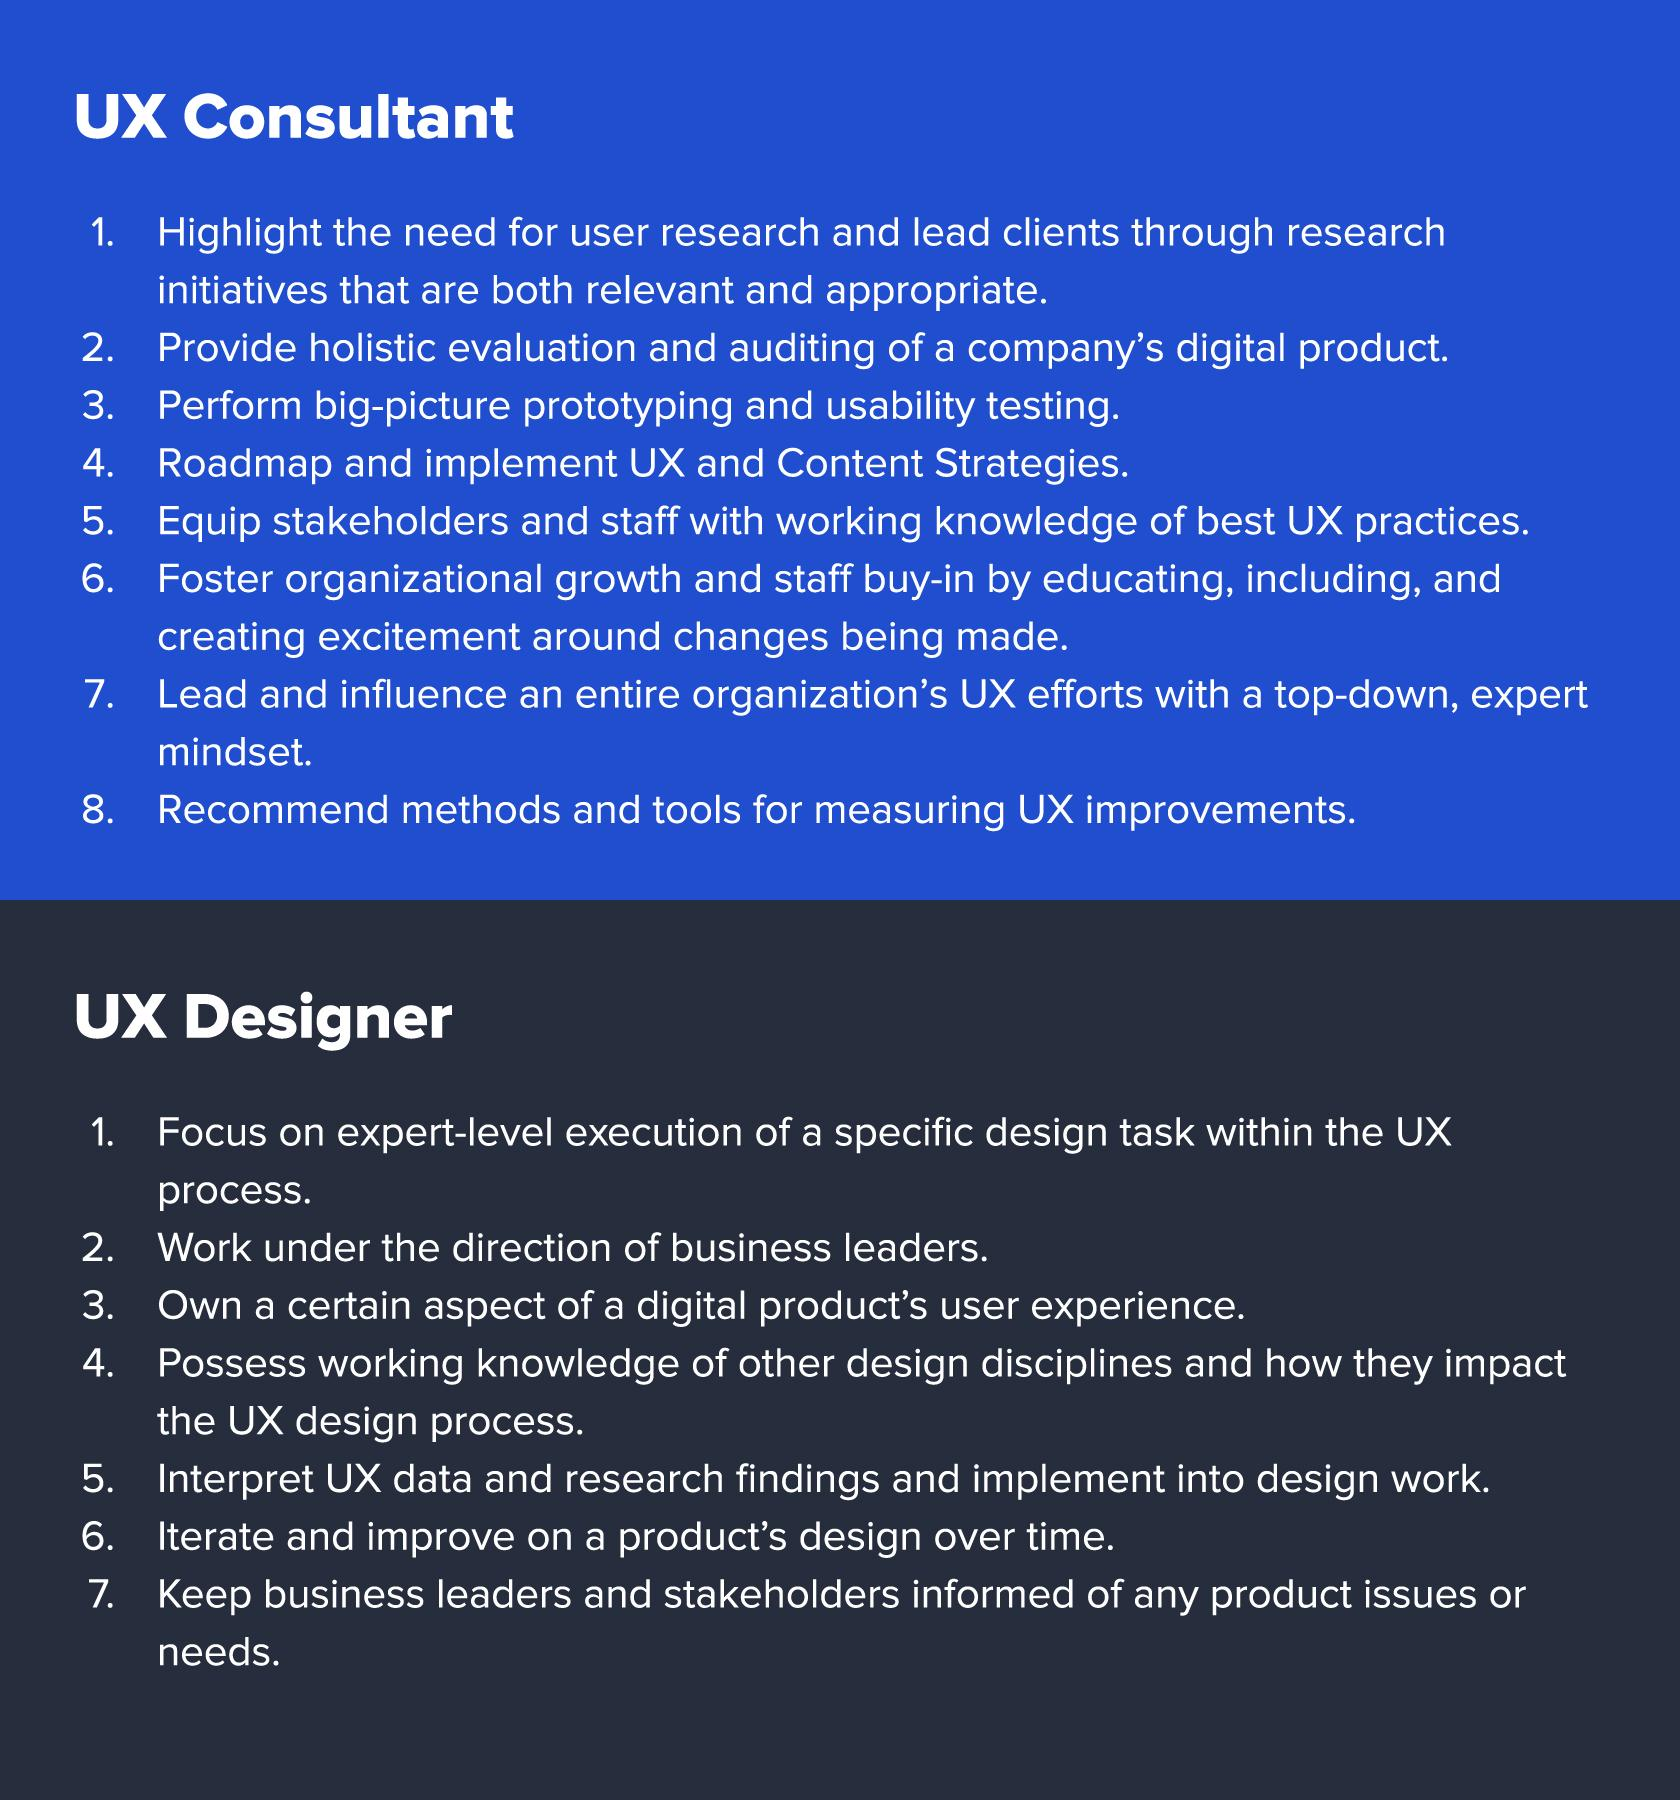 Key characteristics of a user experience consultant and a UX designer